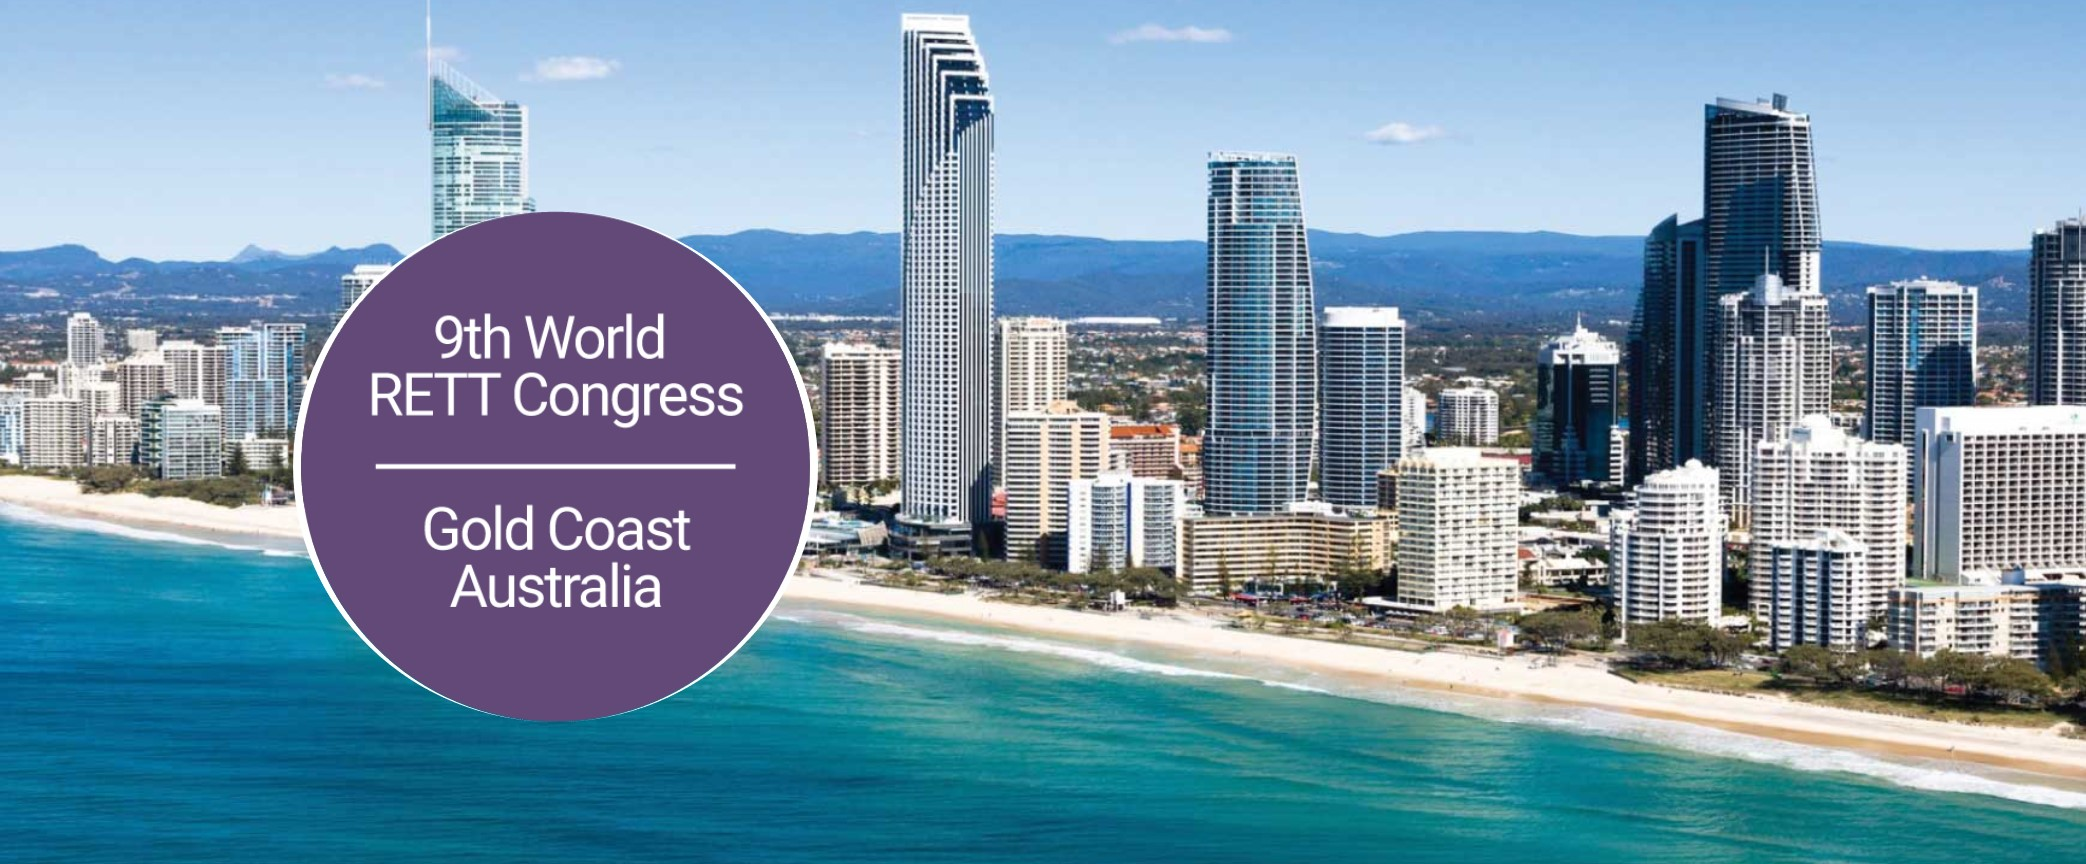 Update on the WORLD RETT SYNDROME CONGRESS to be held in Surfers Paradise from 30 September to 3 October 2020